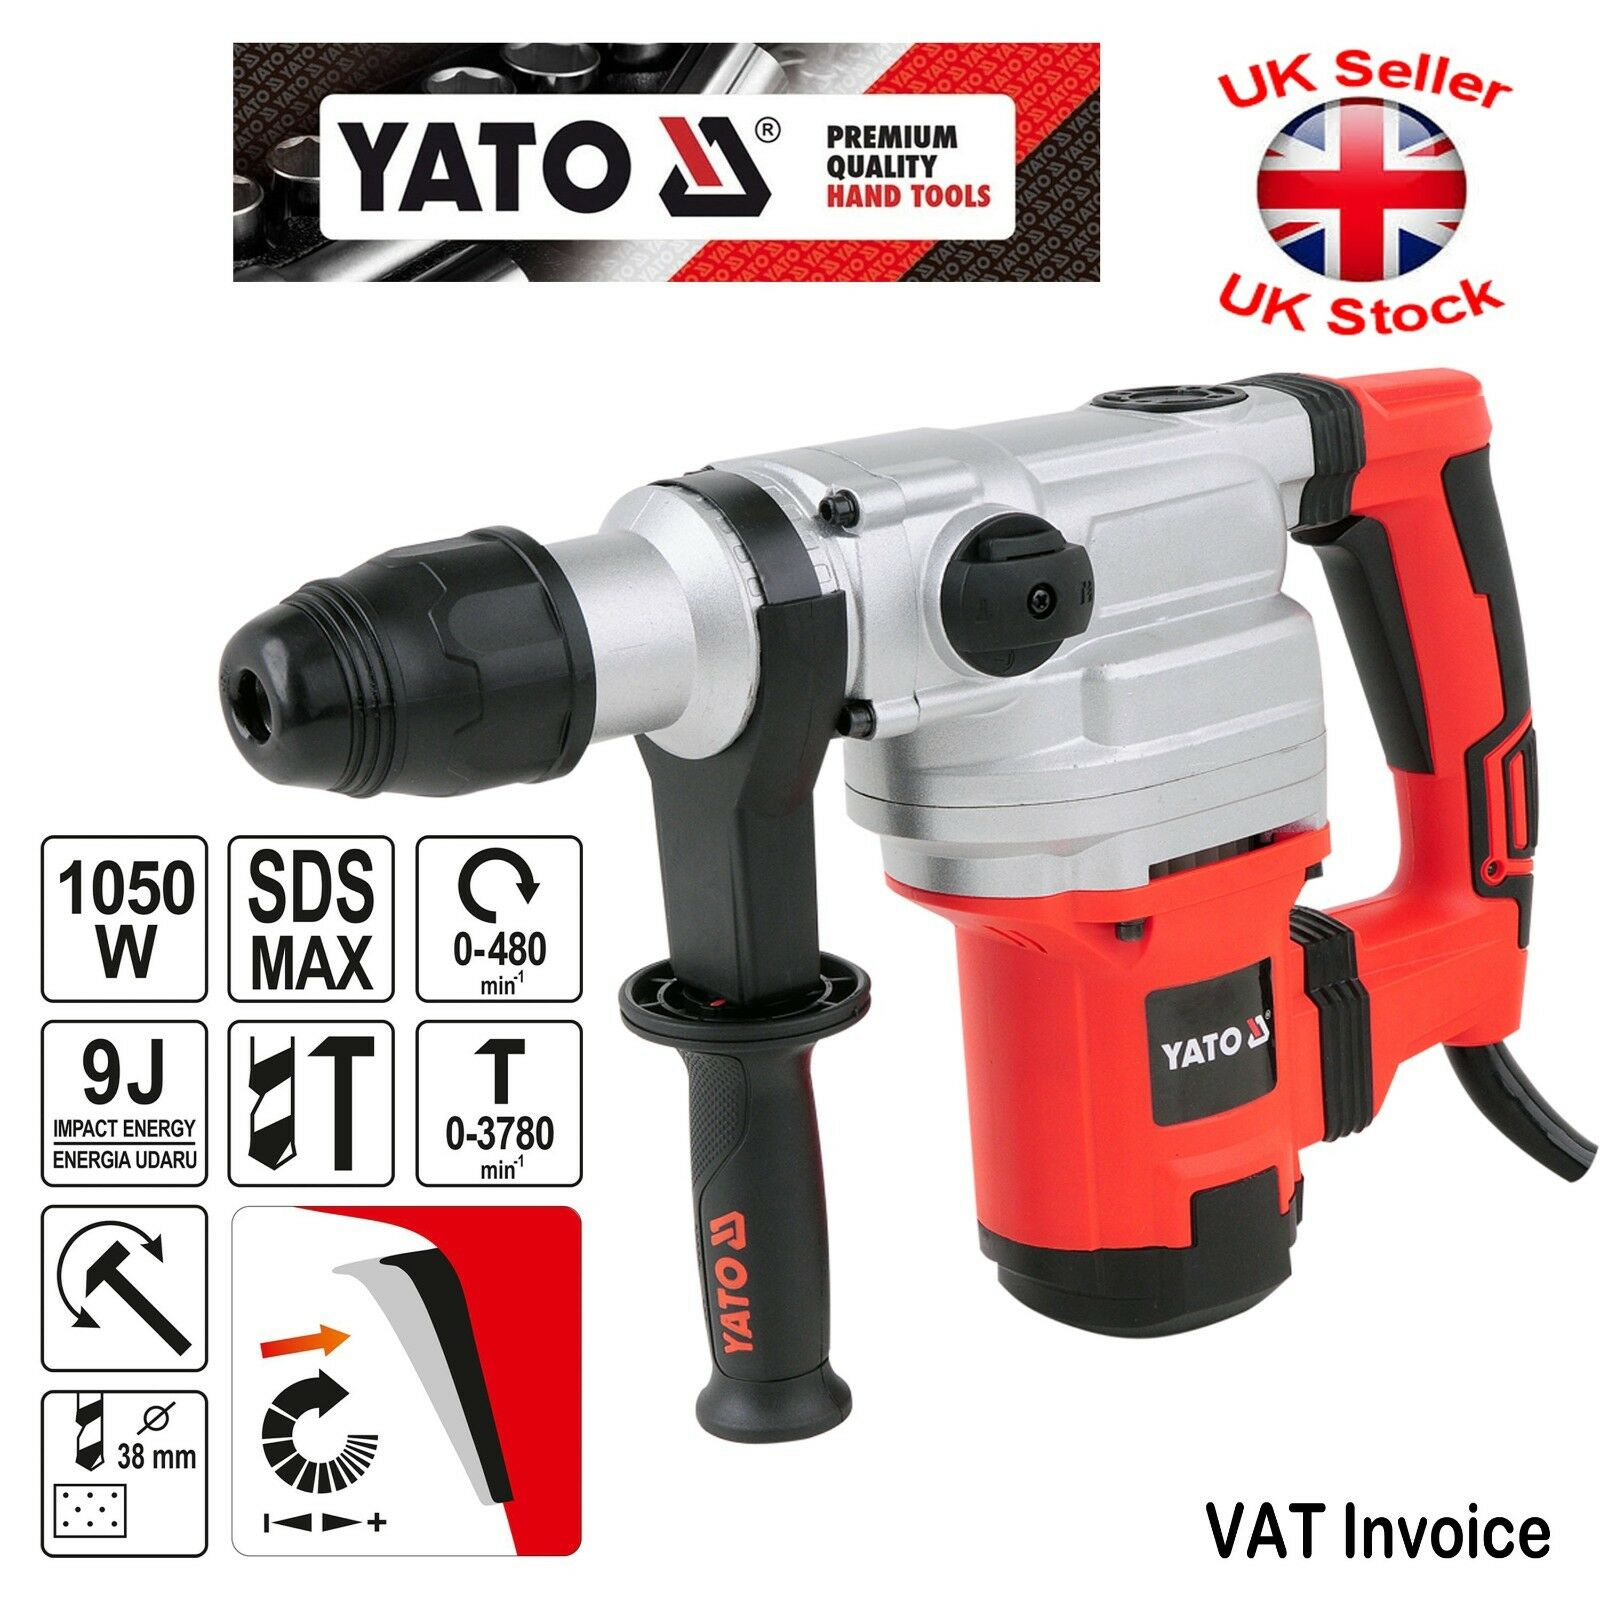 Yato Professional SDS Max Hammer Drill 1050W 9 Joule 3780pm YT-82130